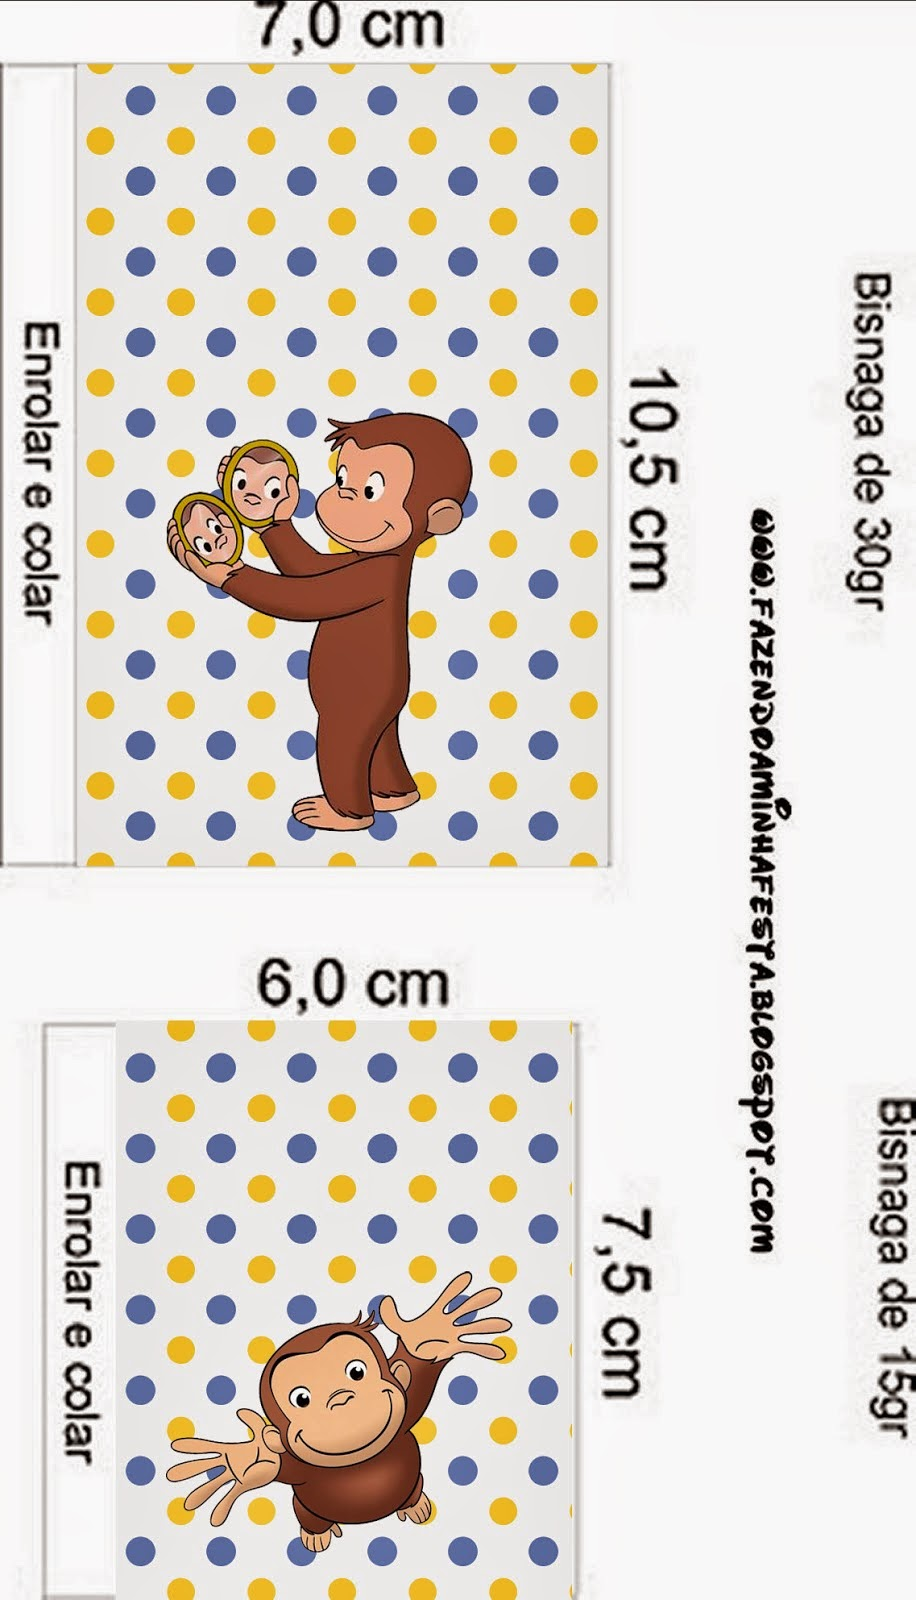 graphic about Curious George Printable named Curious George: Absolutely free Printable Sweet Bar Labels. - Oh My